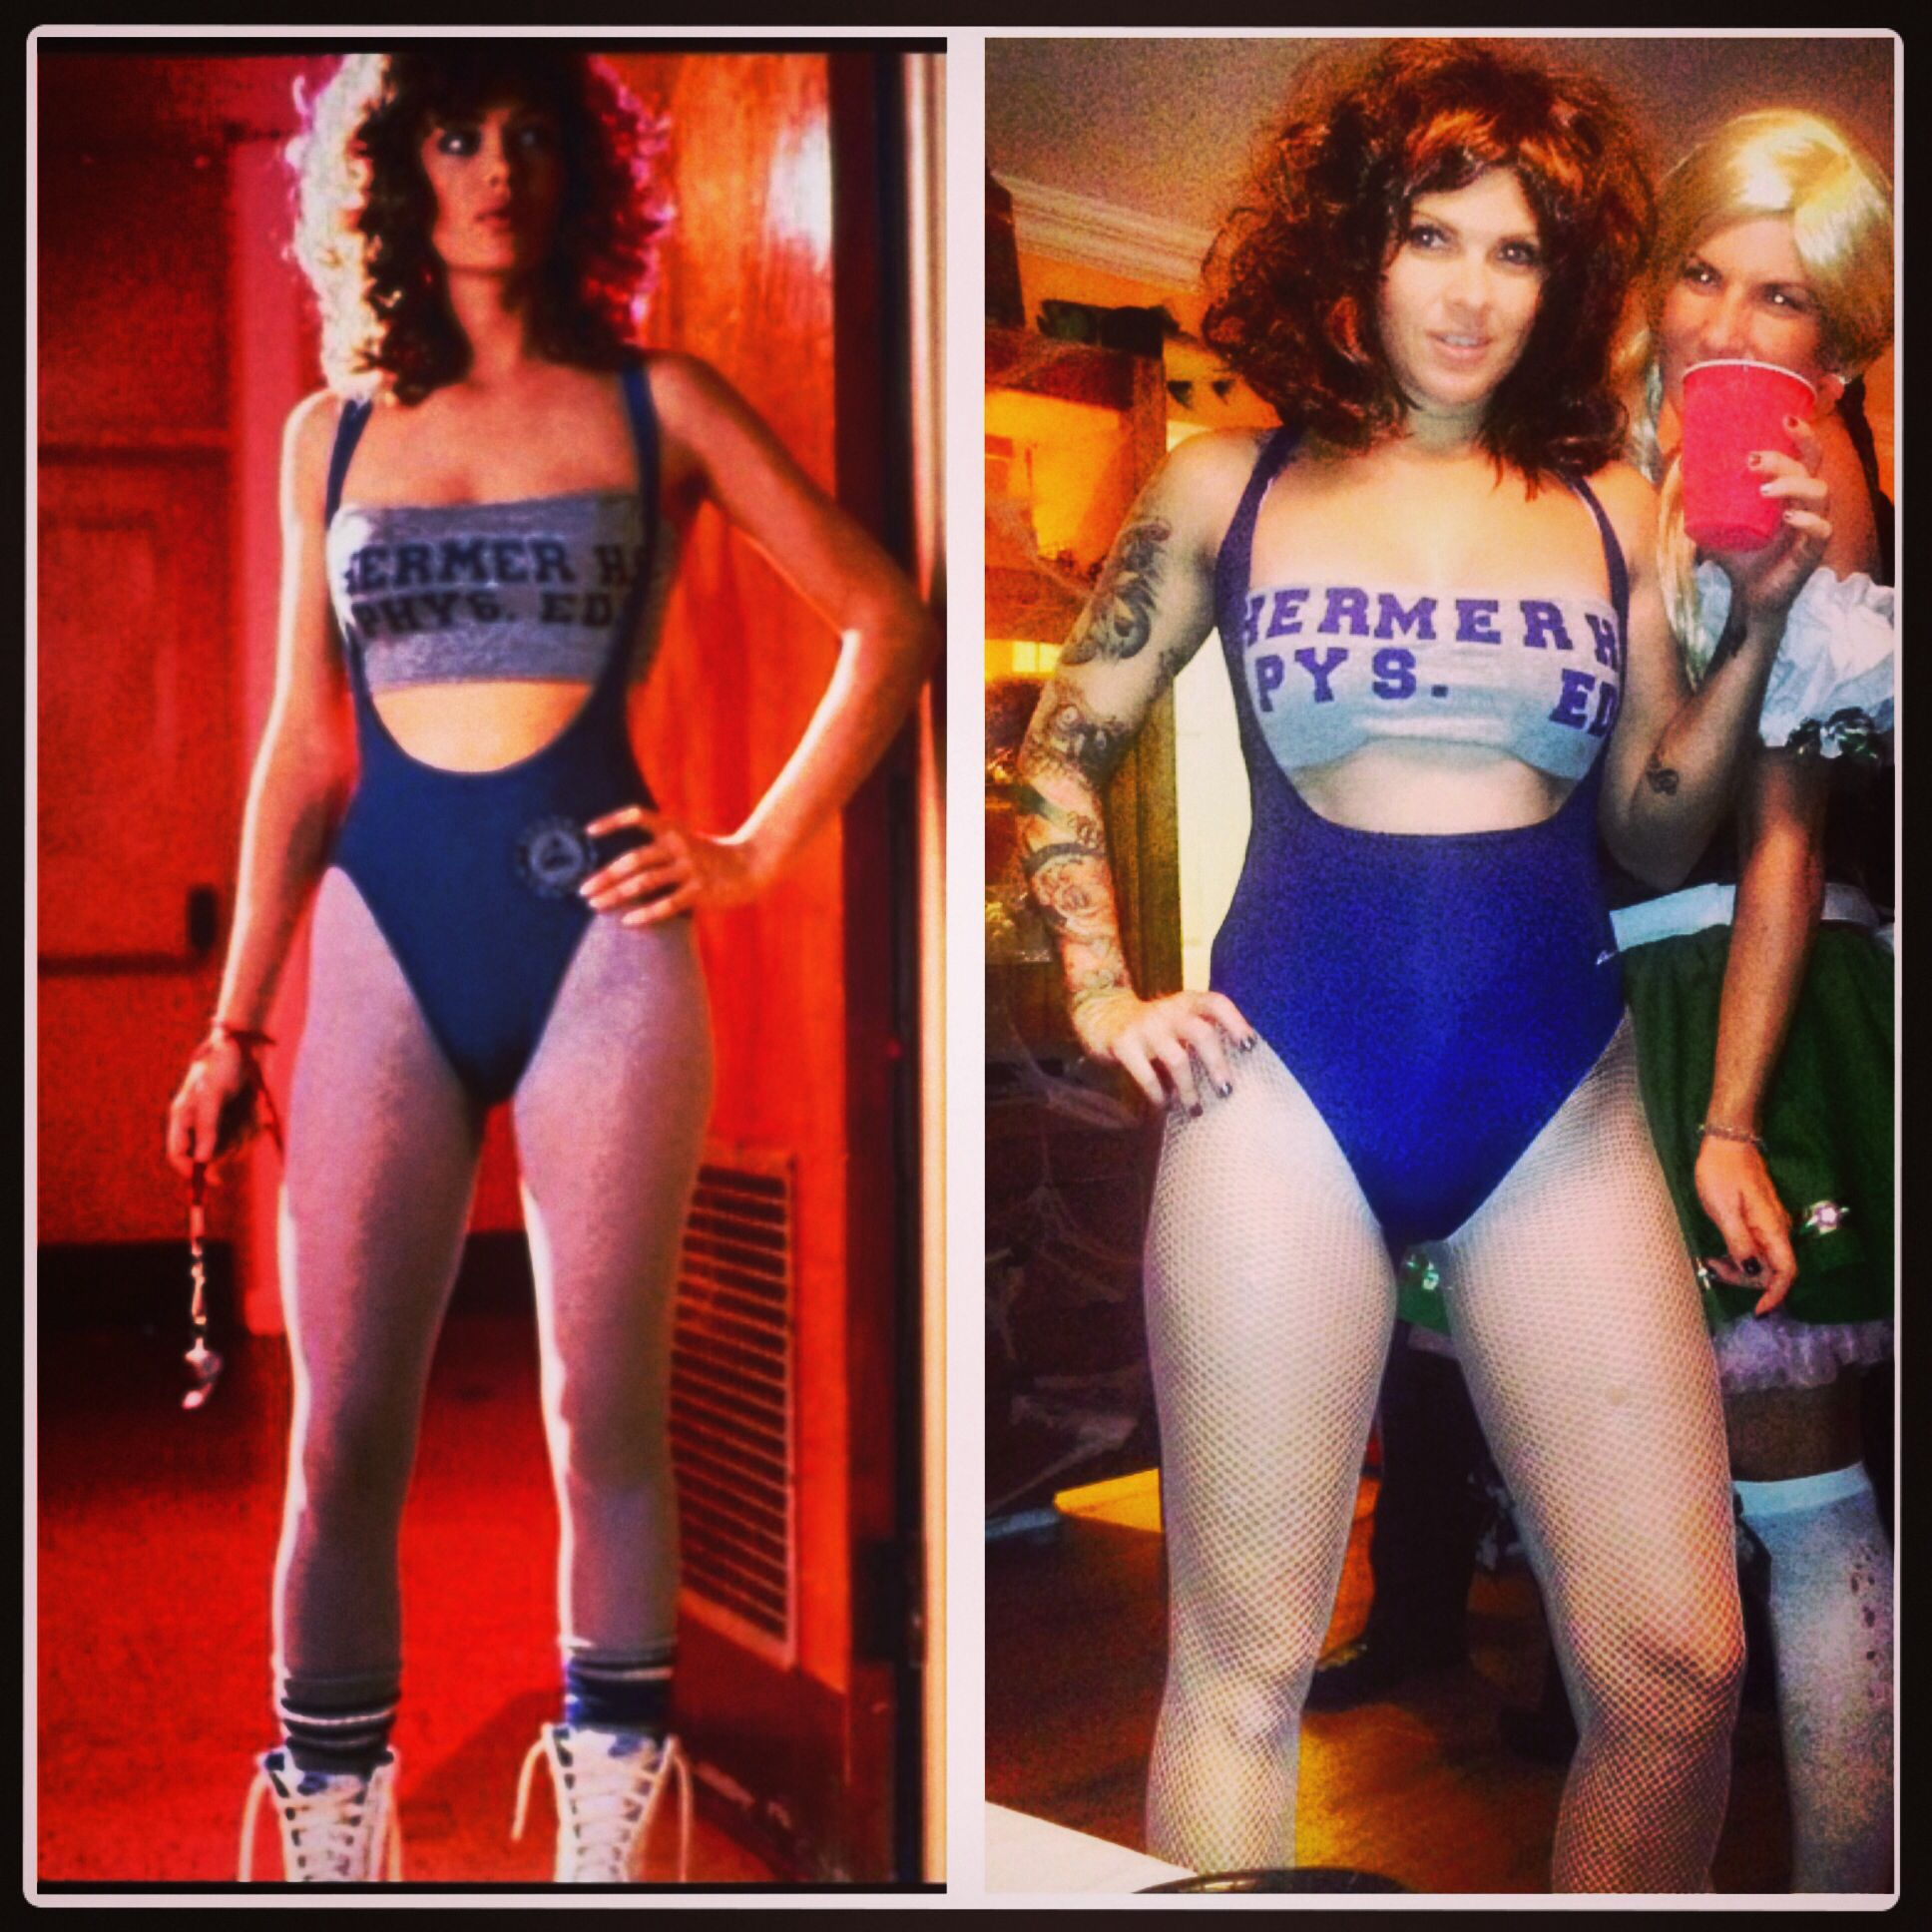 19ac66d1cb8 Weird science costume | Beauty in 2019 | Science costumes, Fashion ...